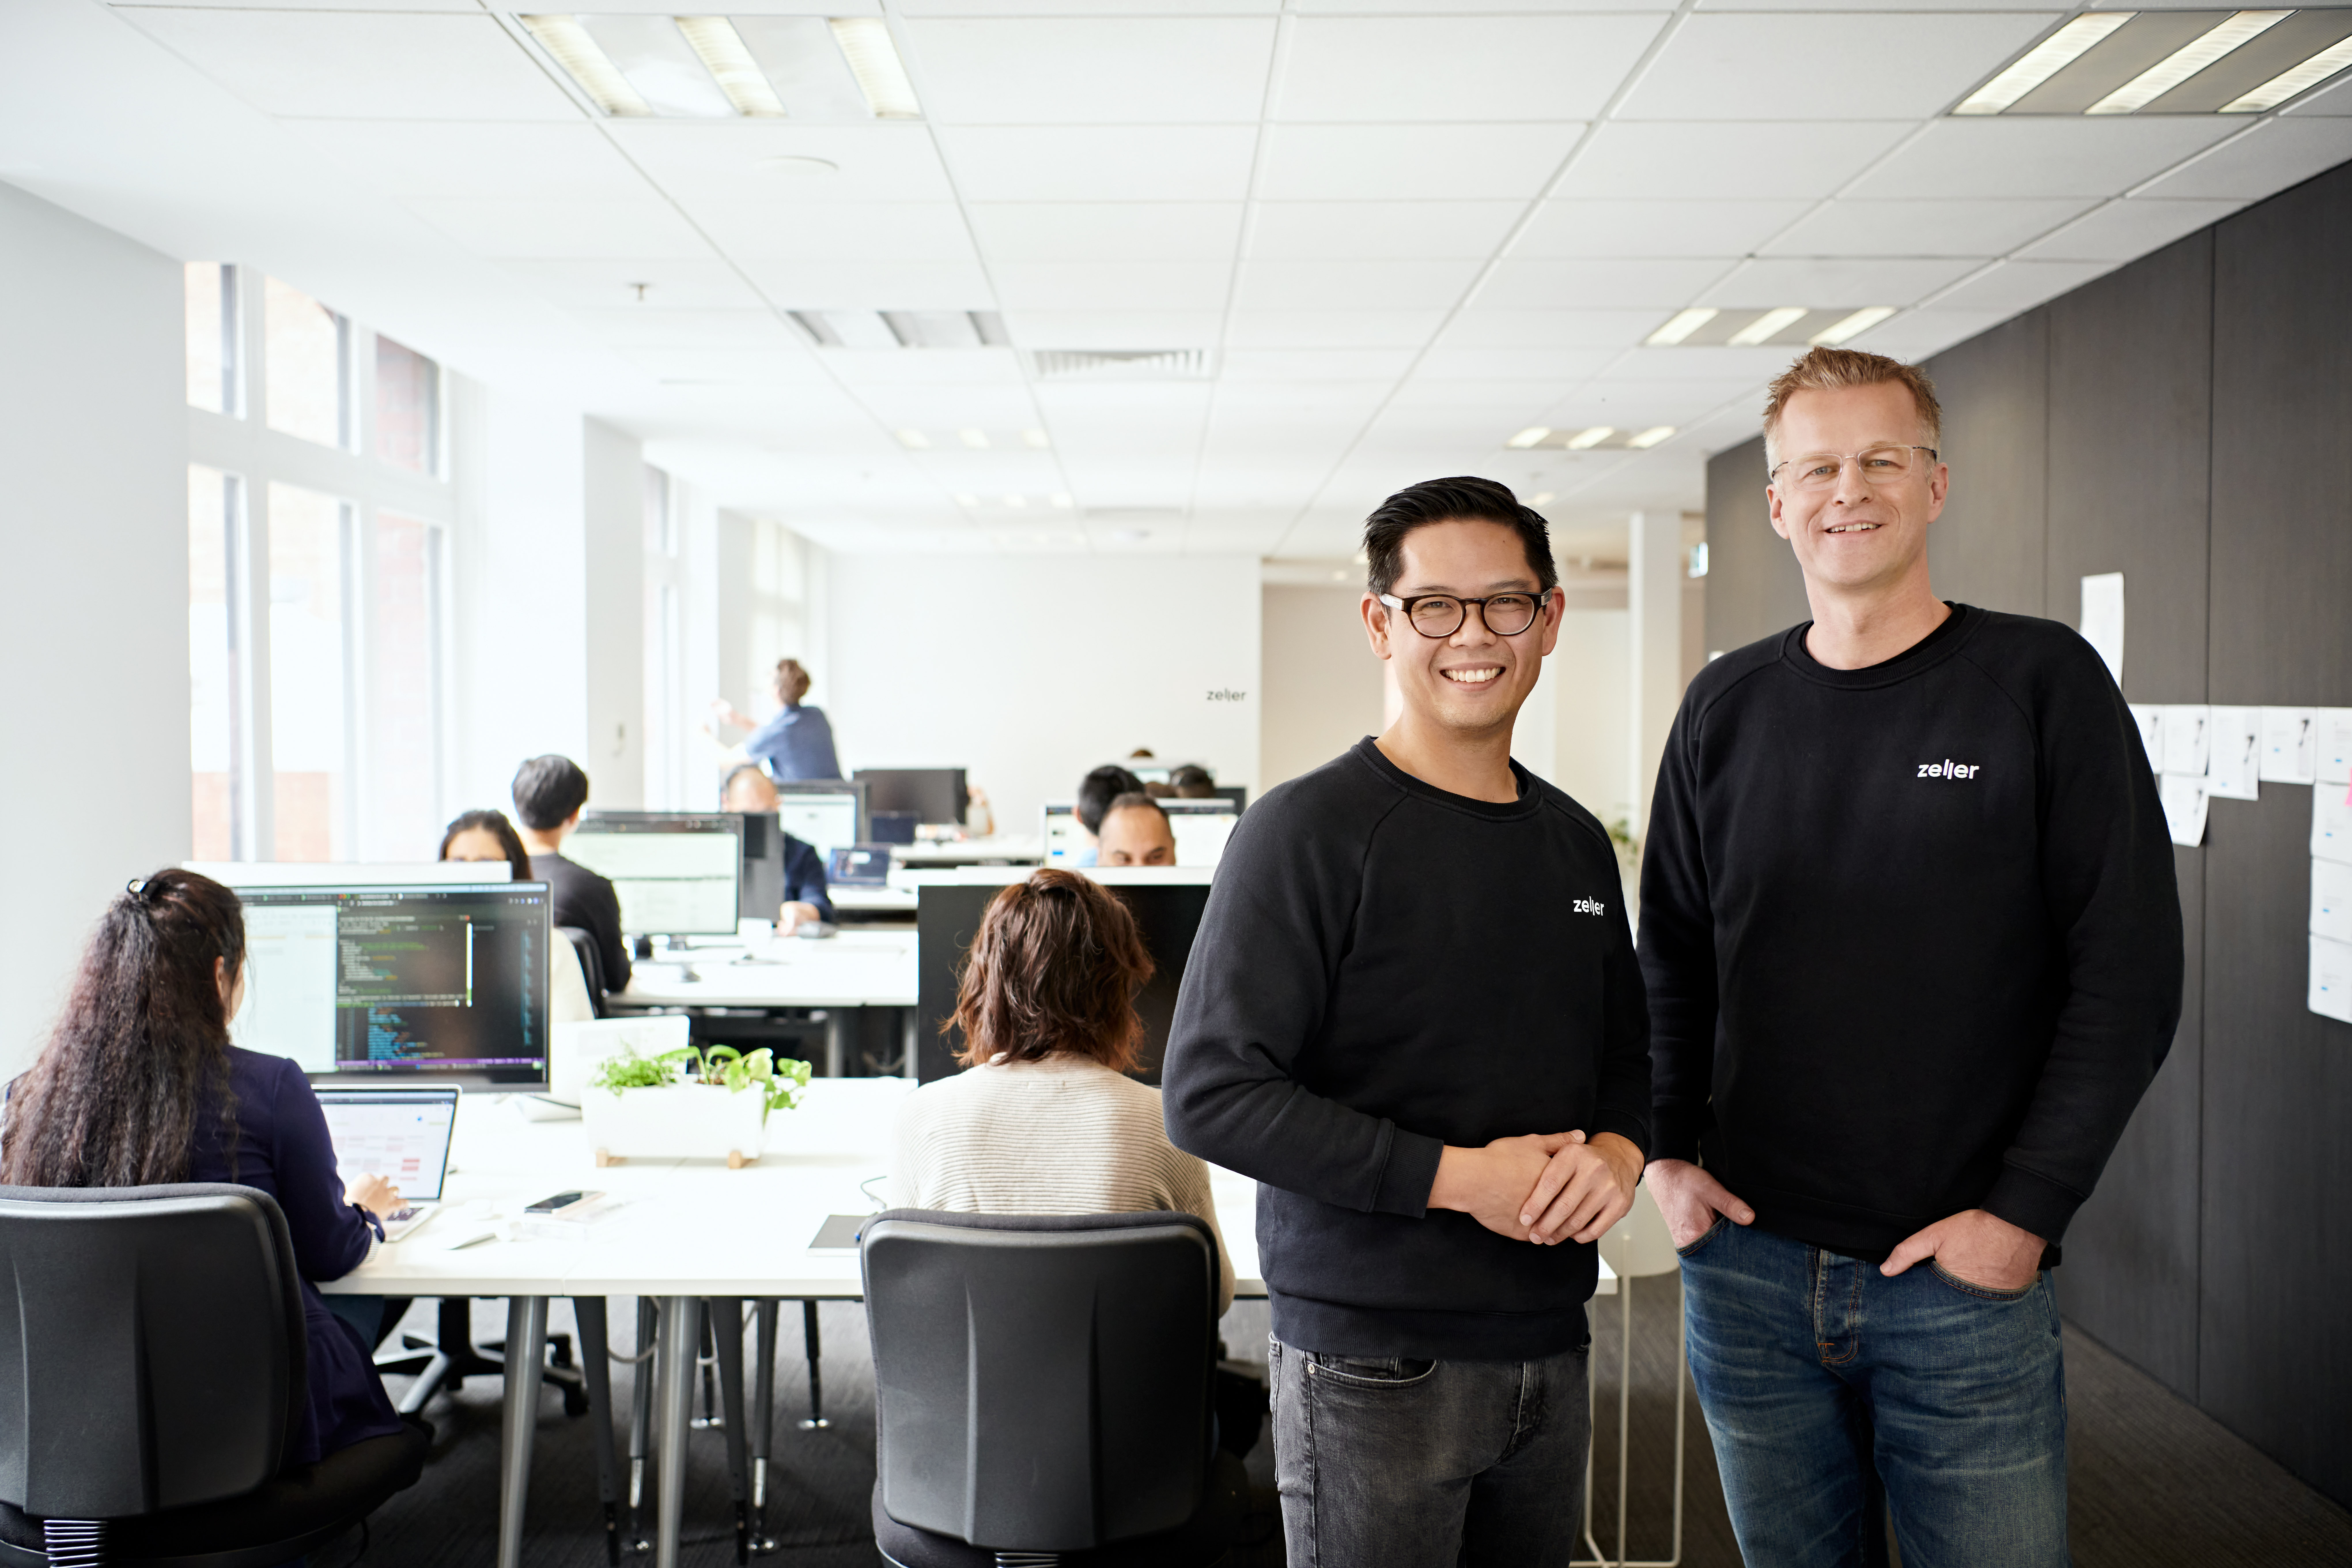 Zeller, a fintech founded by Square alumni, raises $25M AUD Series A led by Lee Fixel's Addition